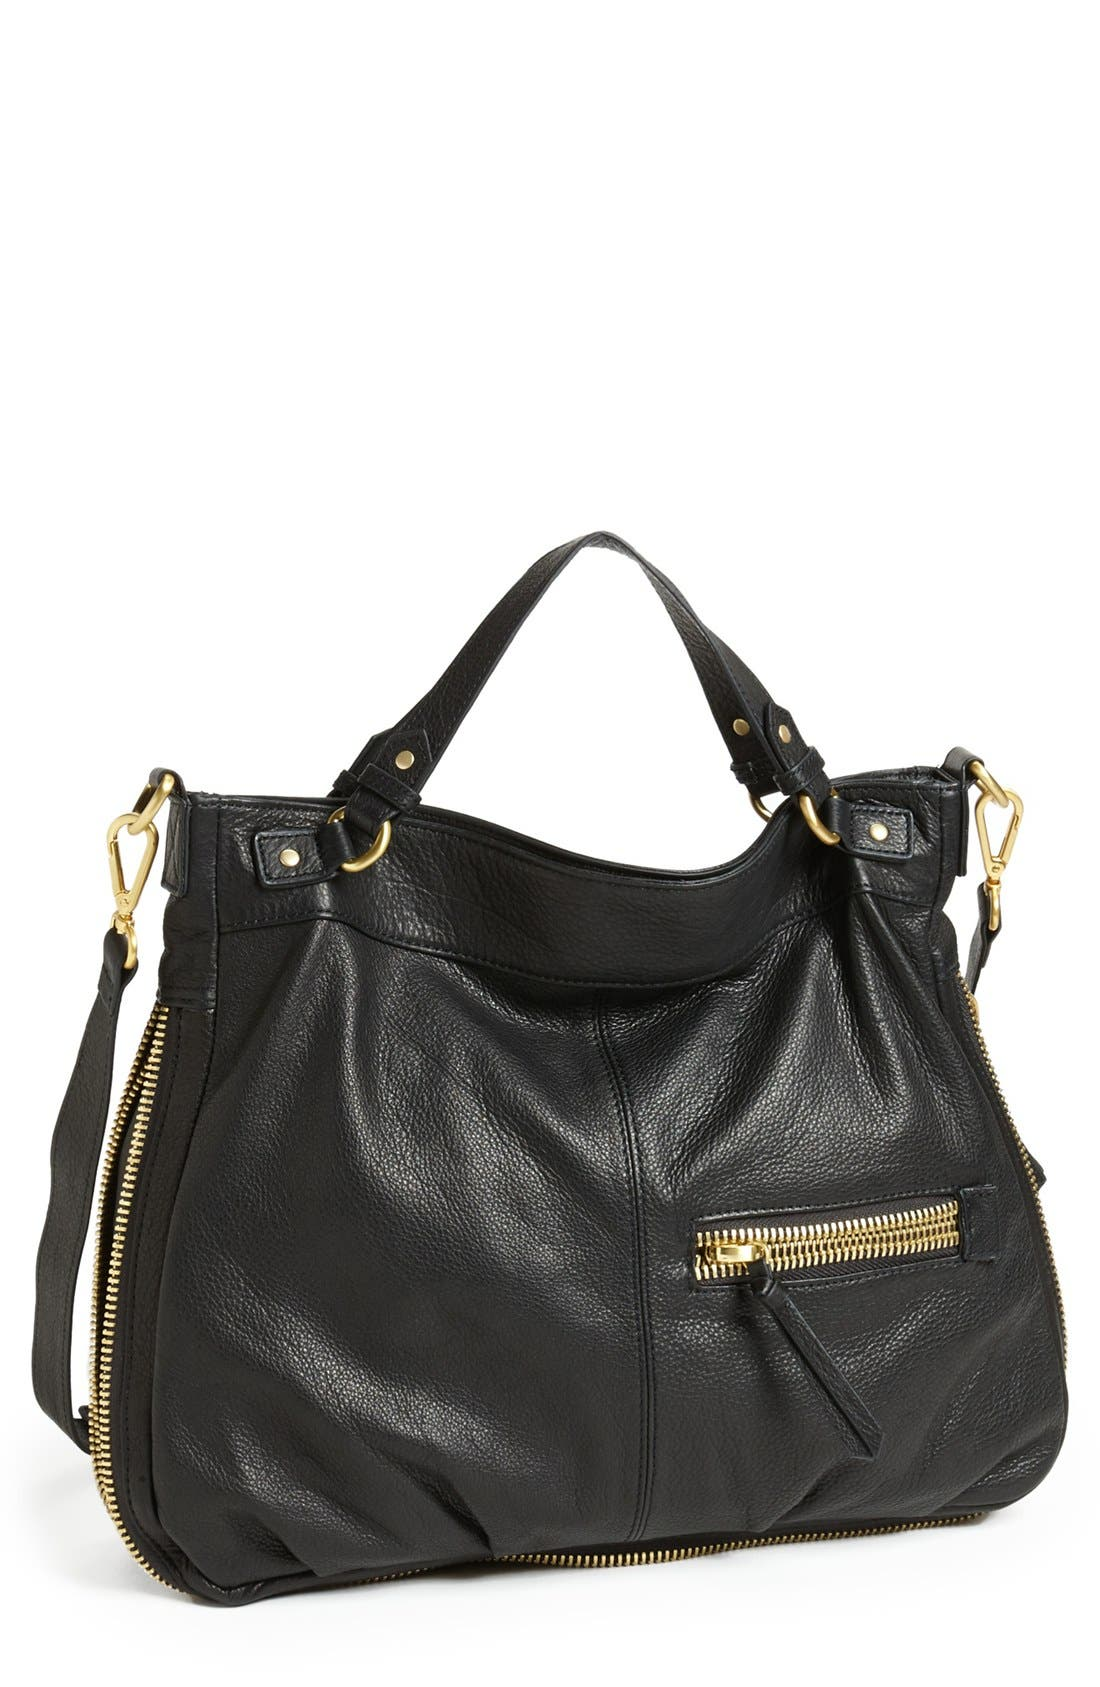 Alternate Image 1 Selected - Steven by Steve Madden 'Hugo' Satchel